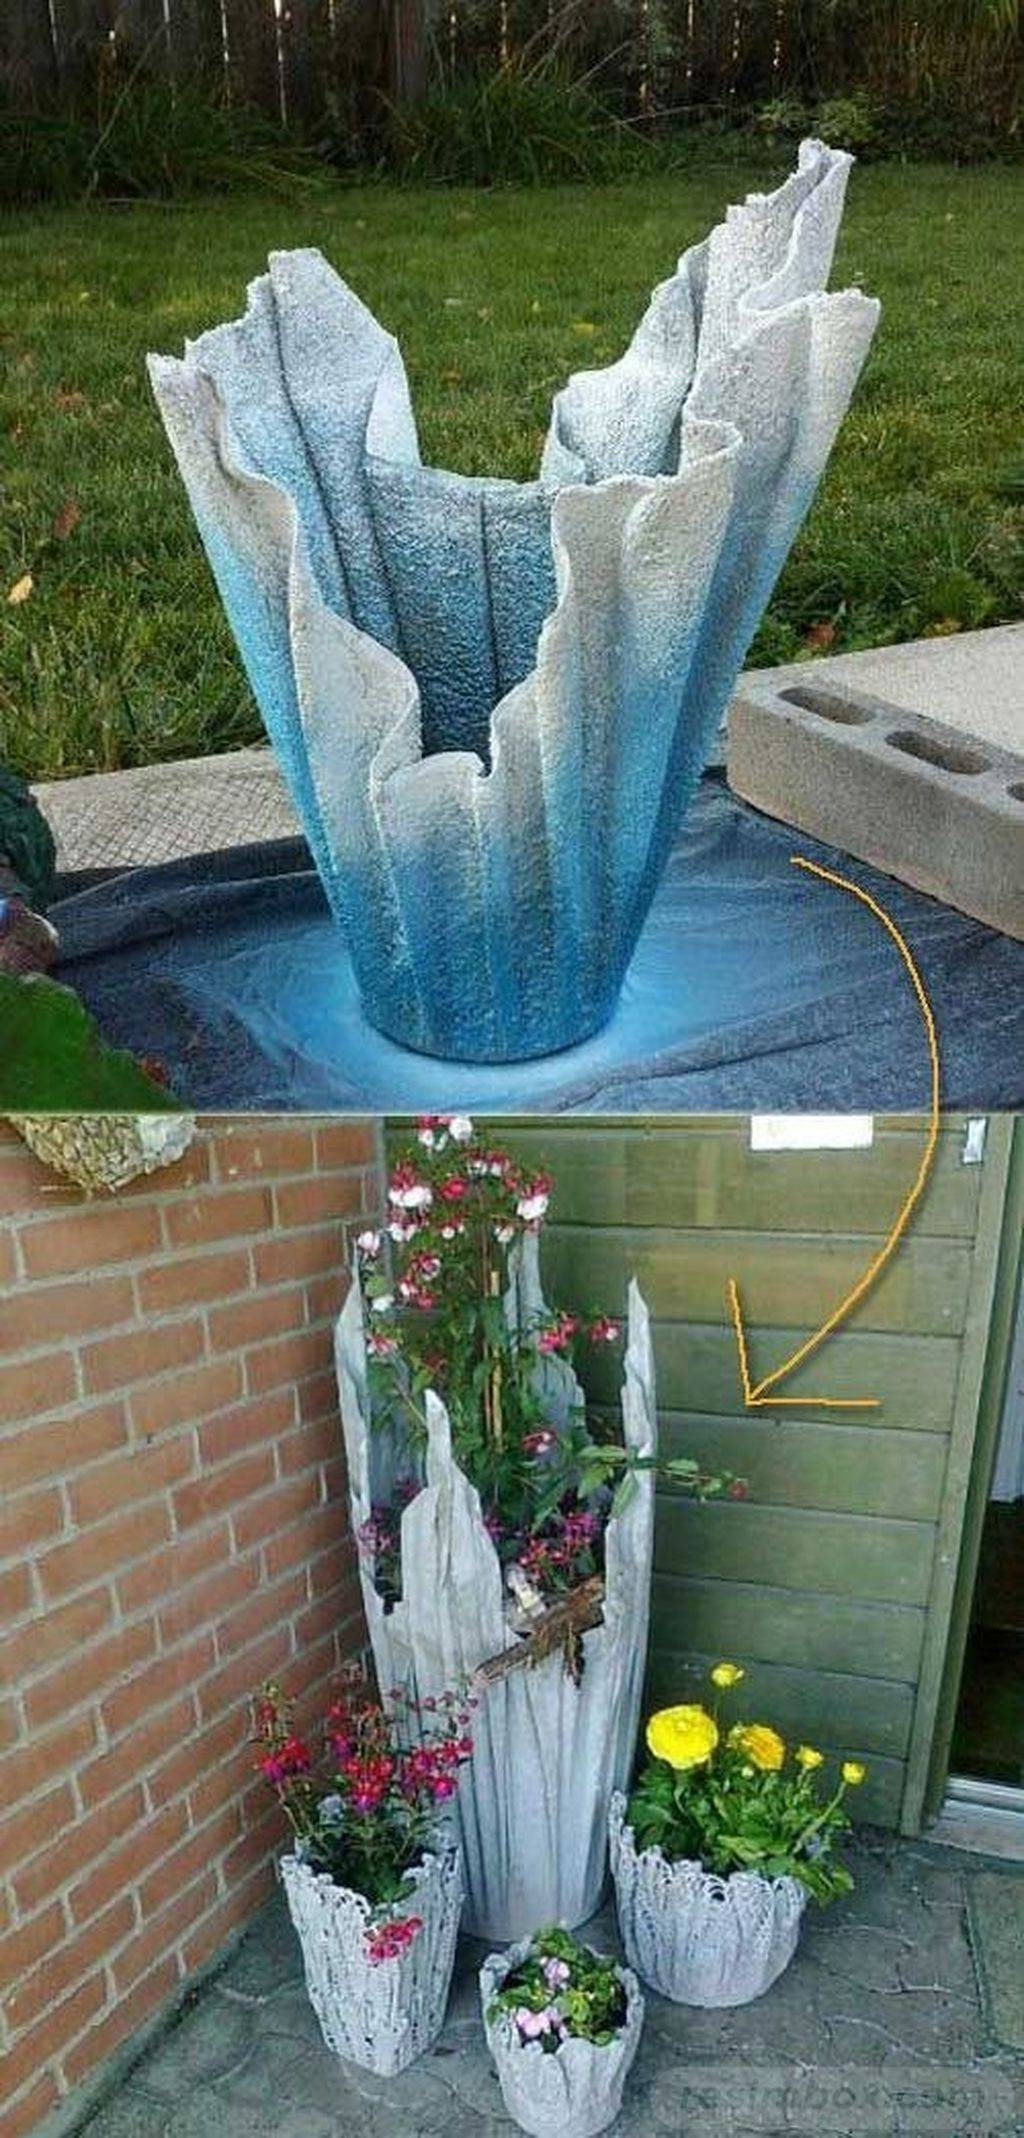 creative garden ideas-603060206329381851